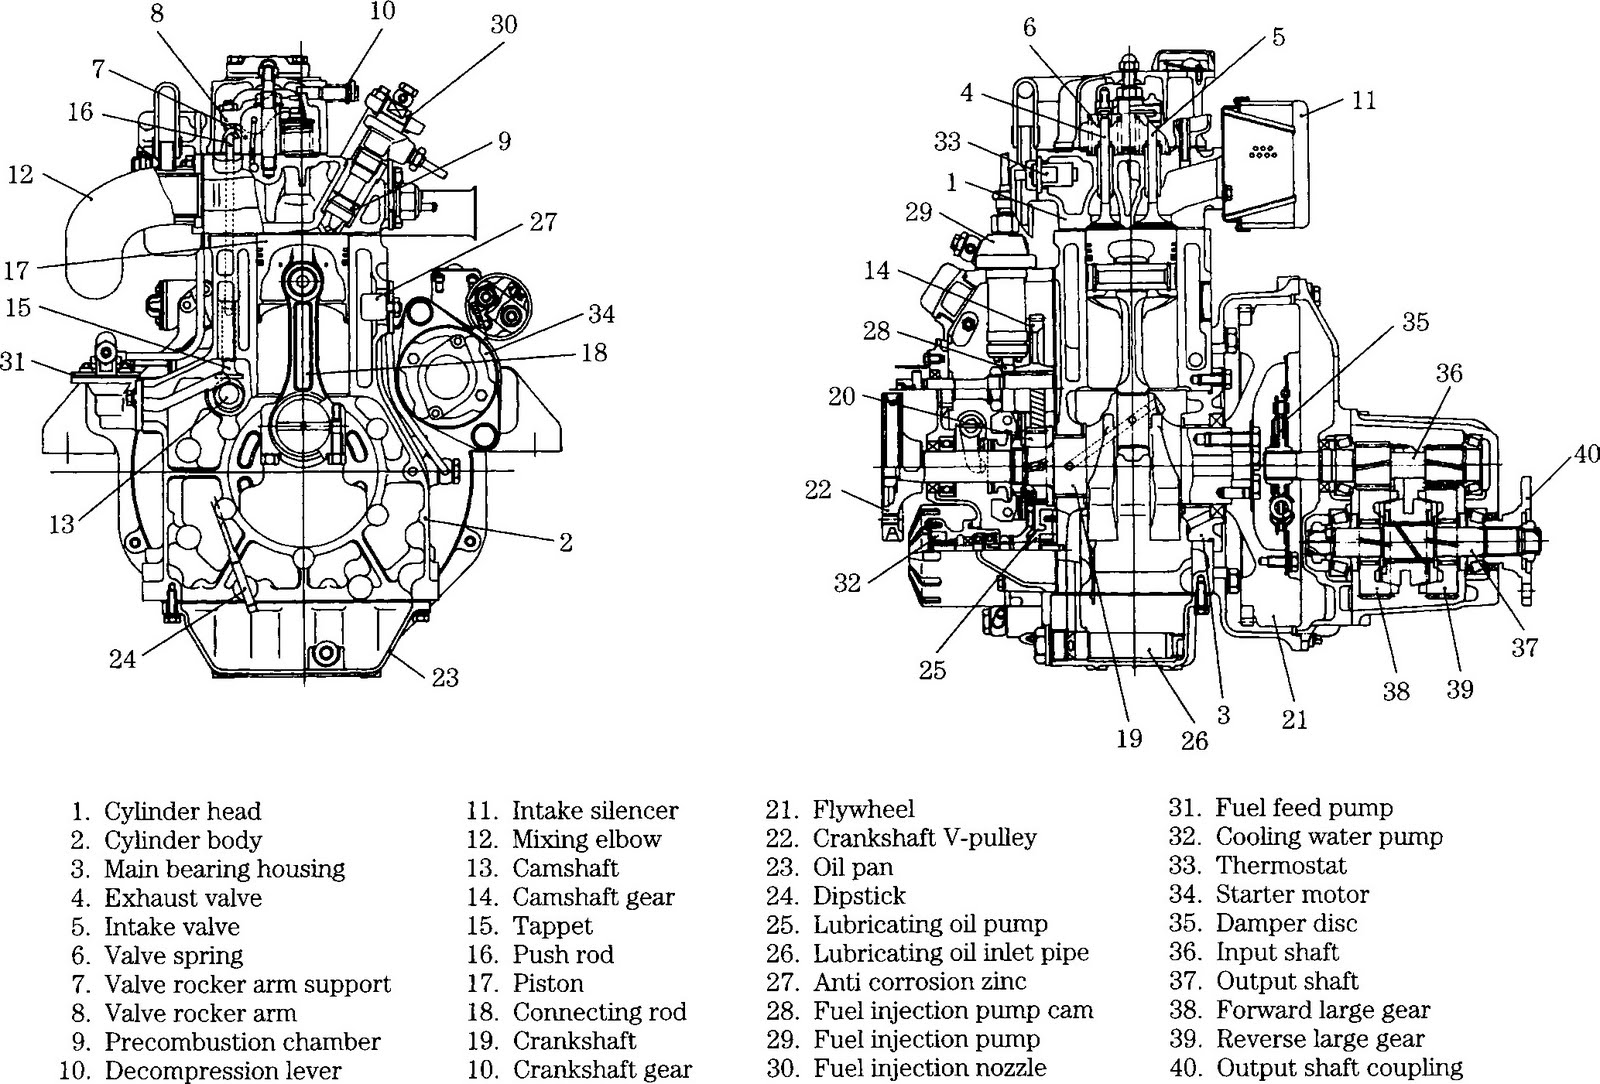 medium resolution of caterpillar 3208 marine engine diagram within diagram 3406c caterpillar engine oil presur 3116 cat engine fuel system